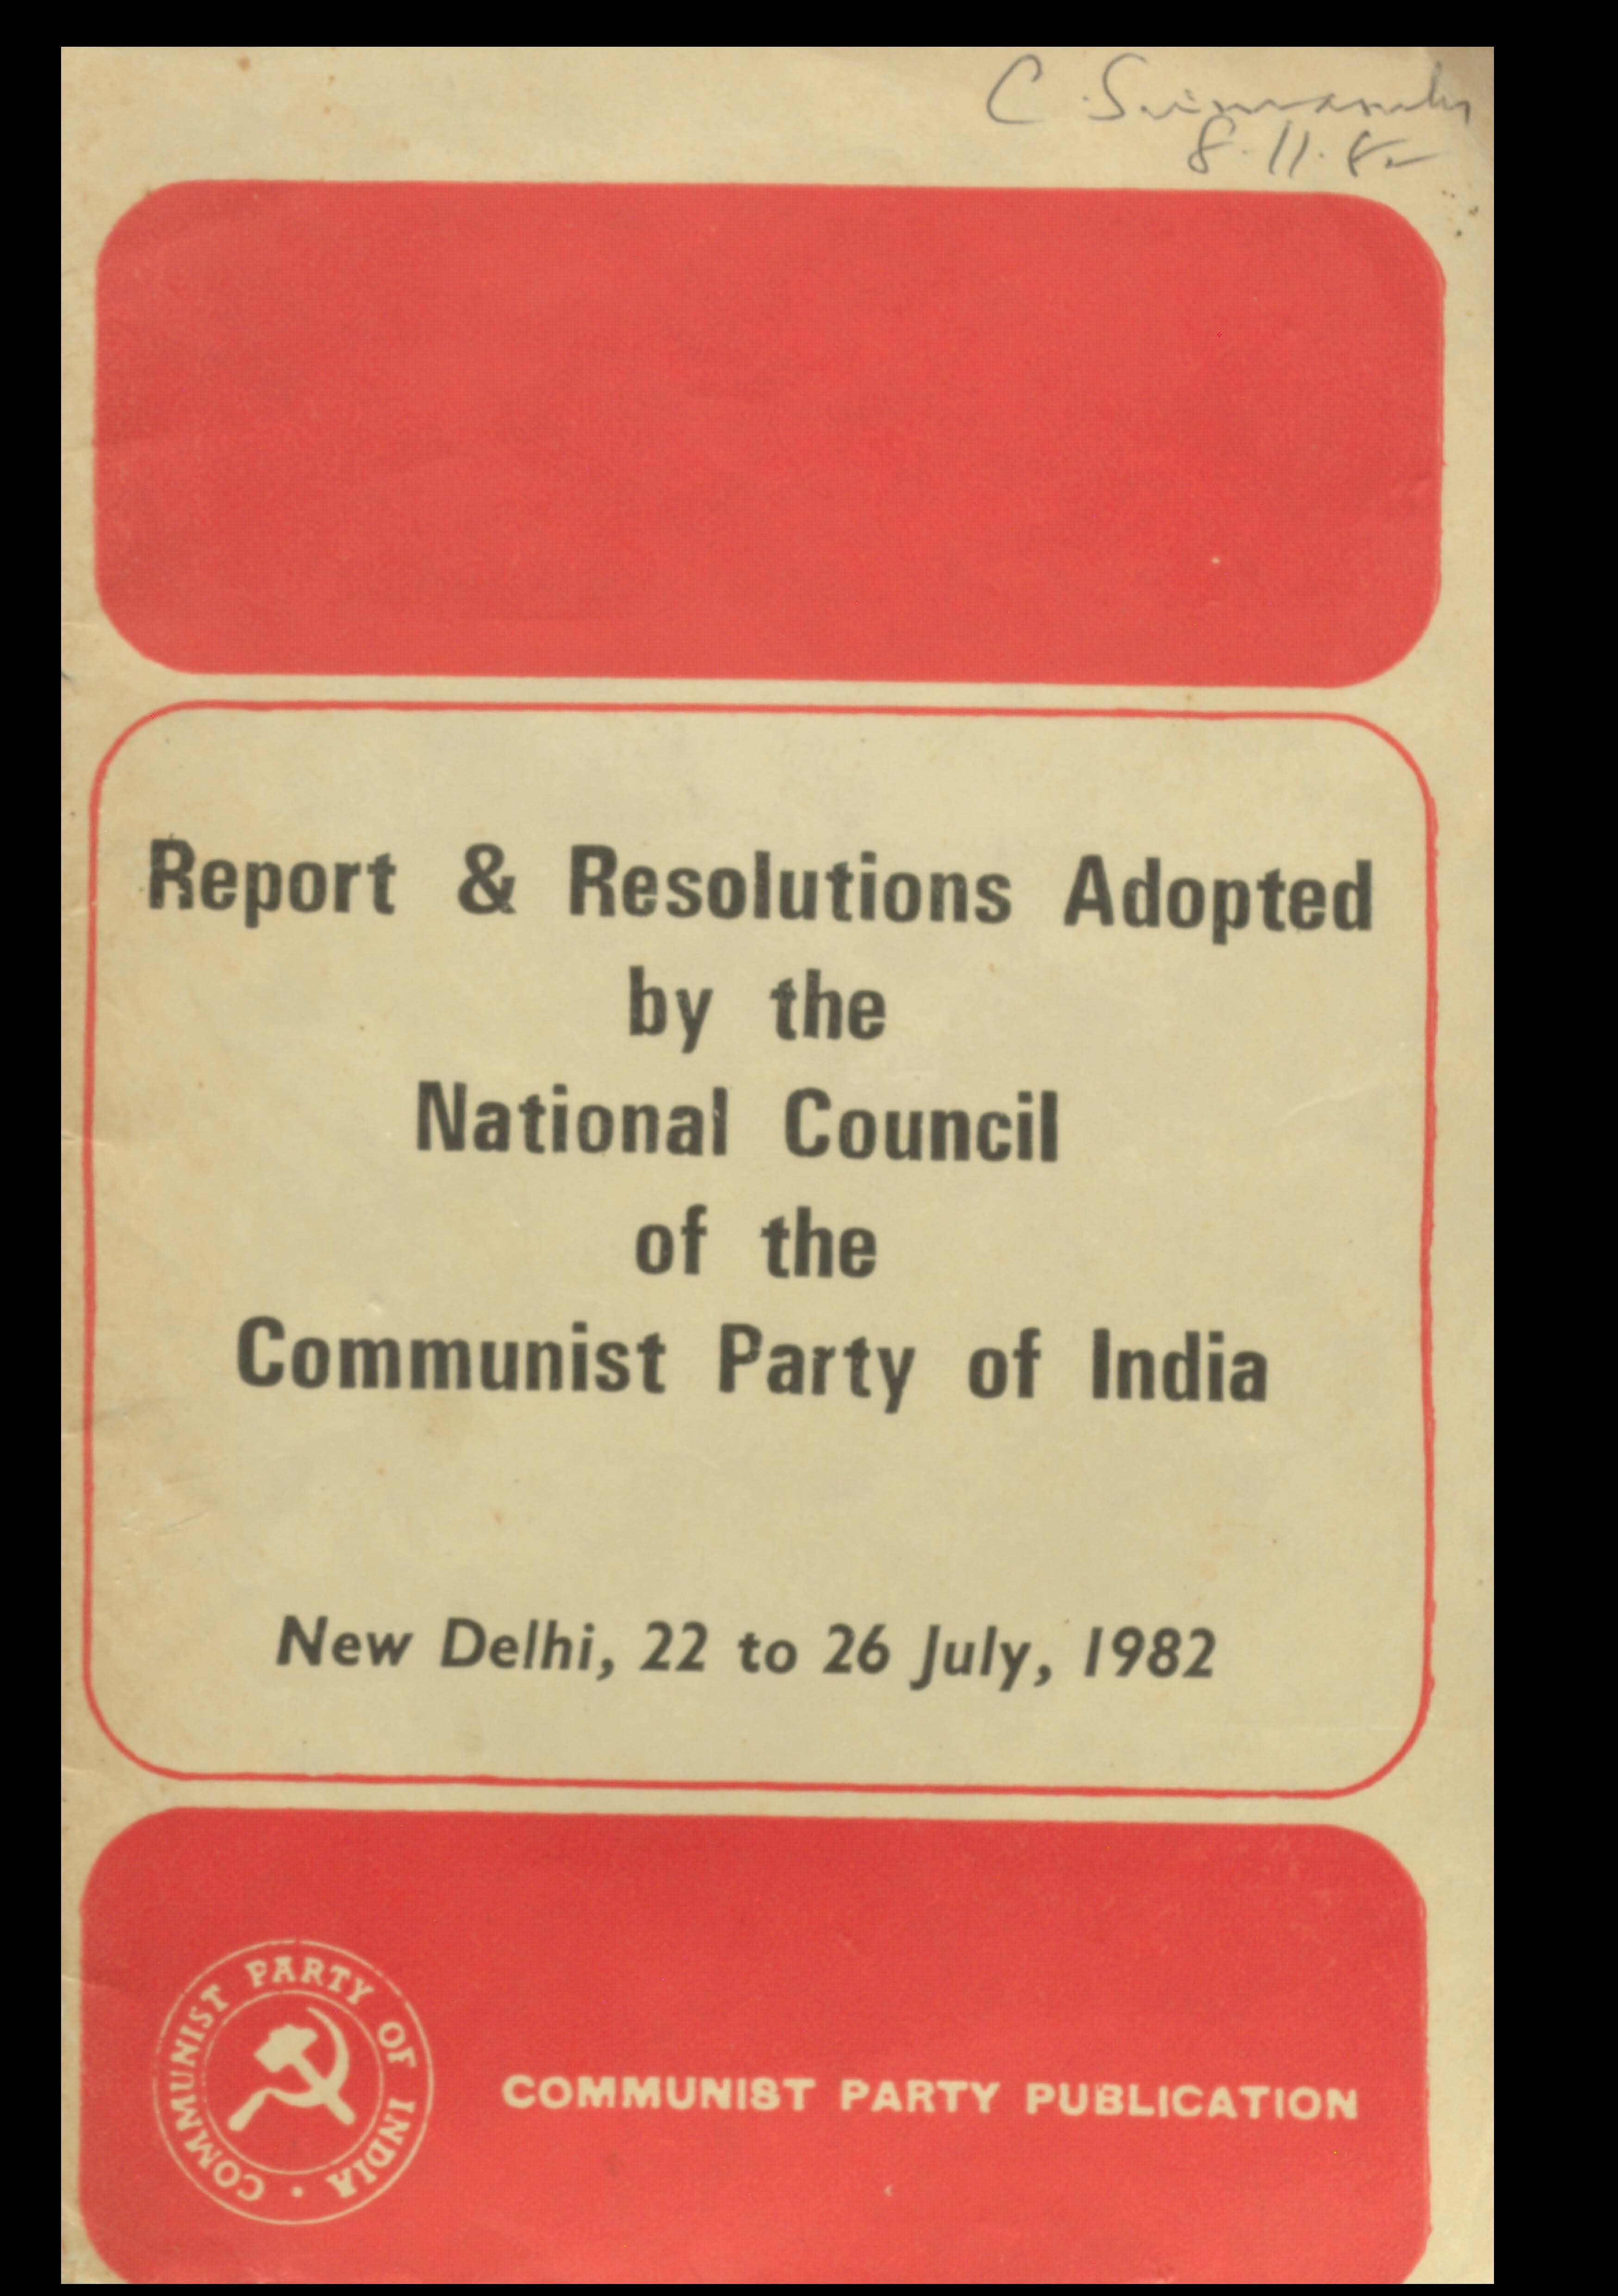 Report & Resolutions adopted by the National Council of the Communist party of India